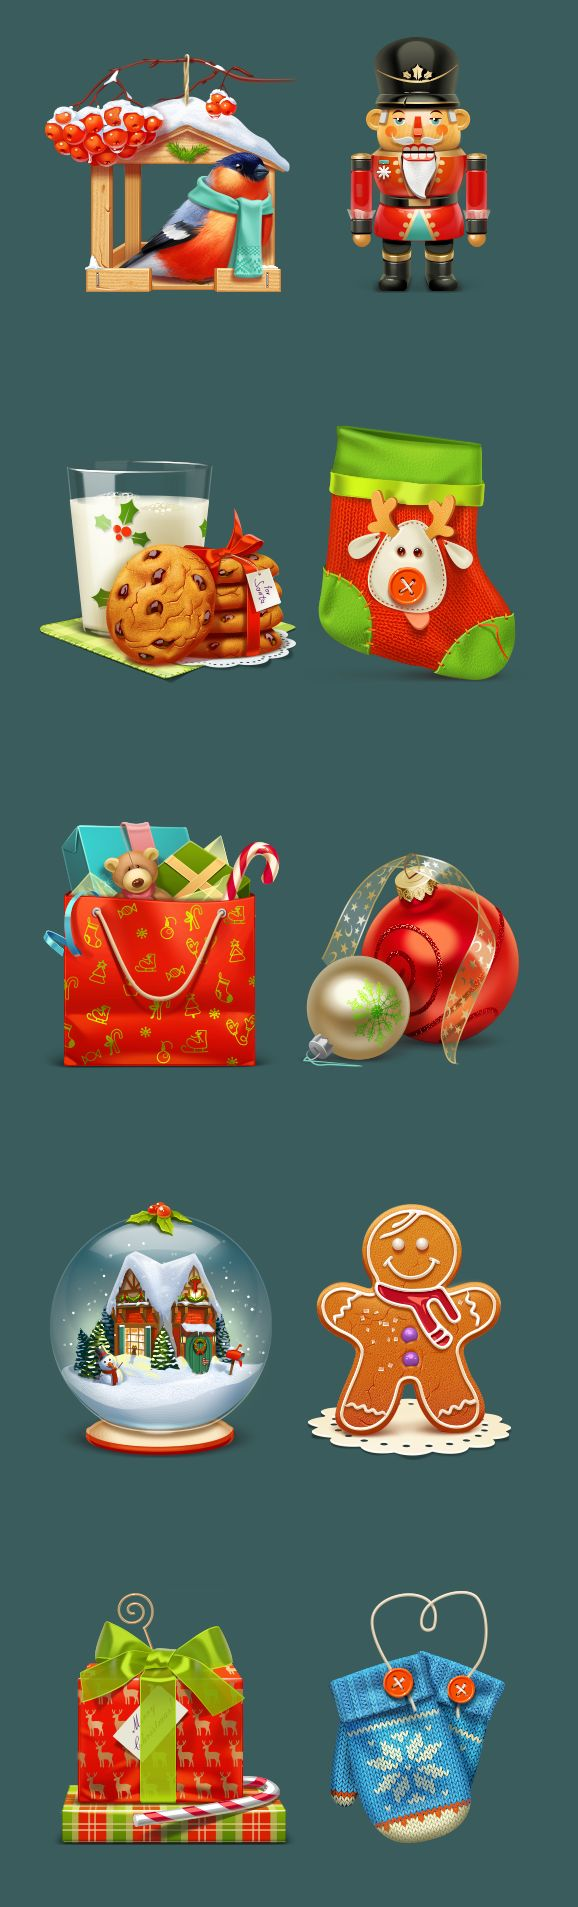 A quality Christmas icon set with 10 icons in resolution 256×256px. Free to use in commercial and private projects.